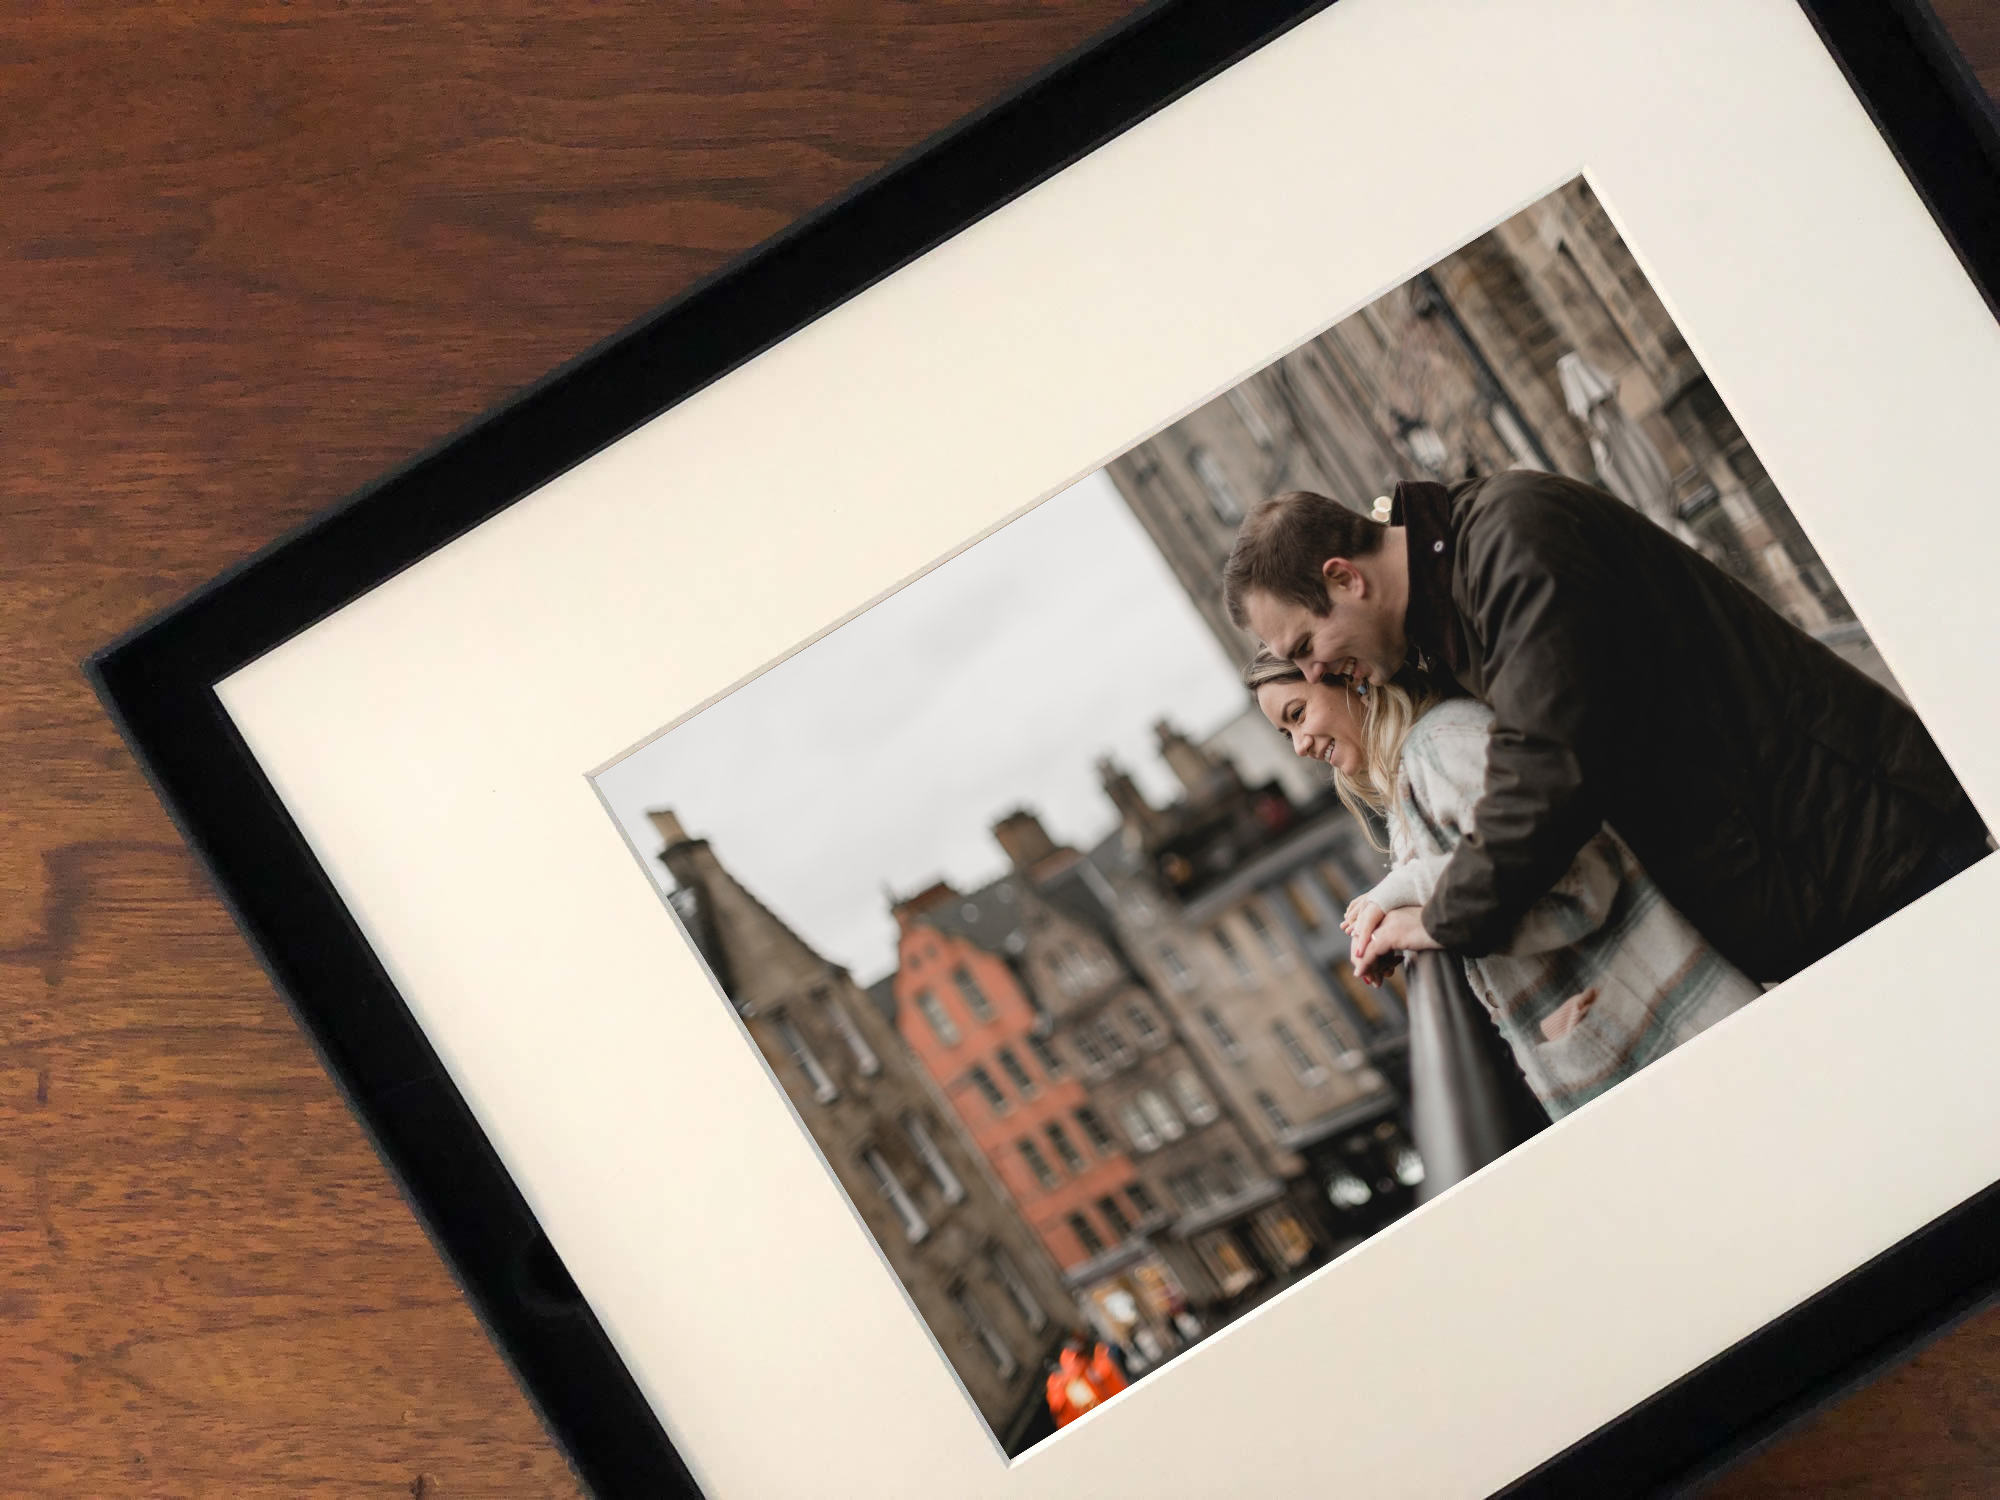 how to store your professional photos to make sure they are safe